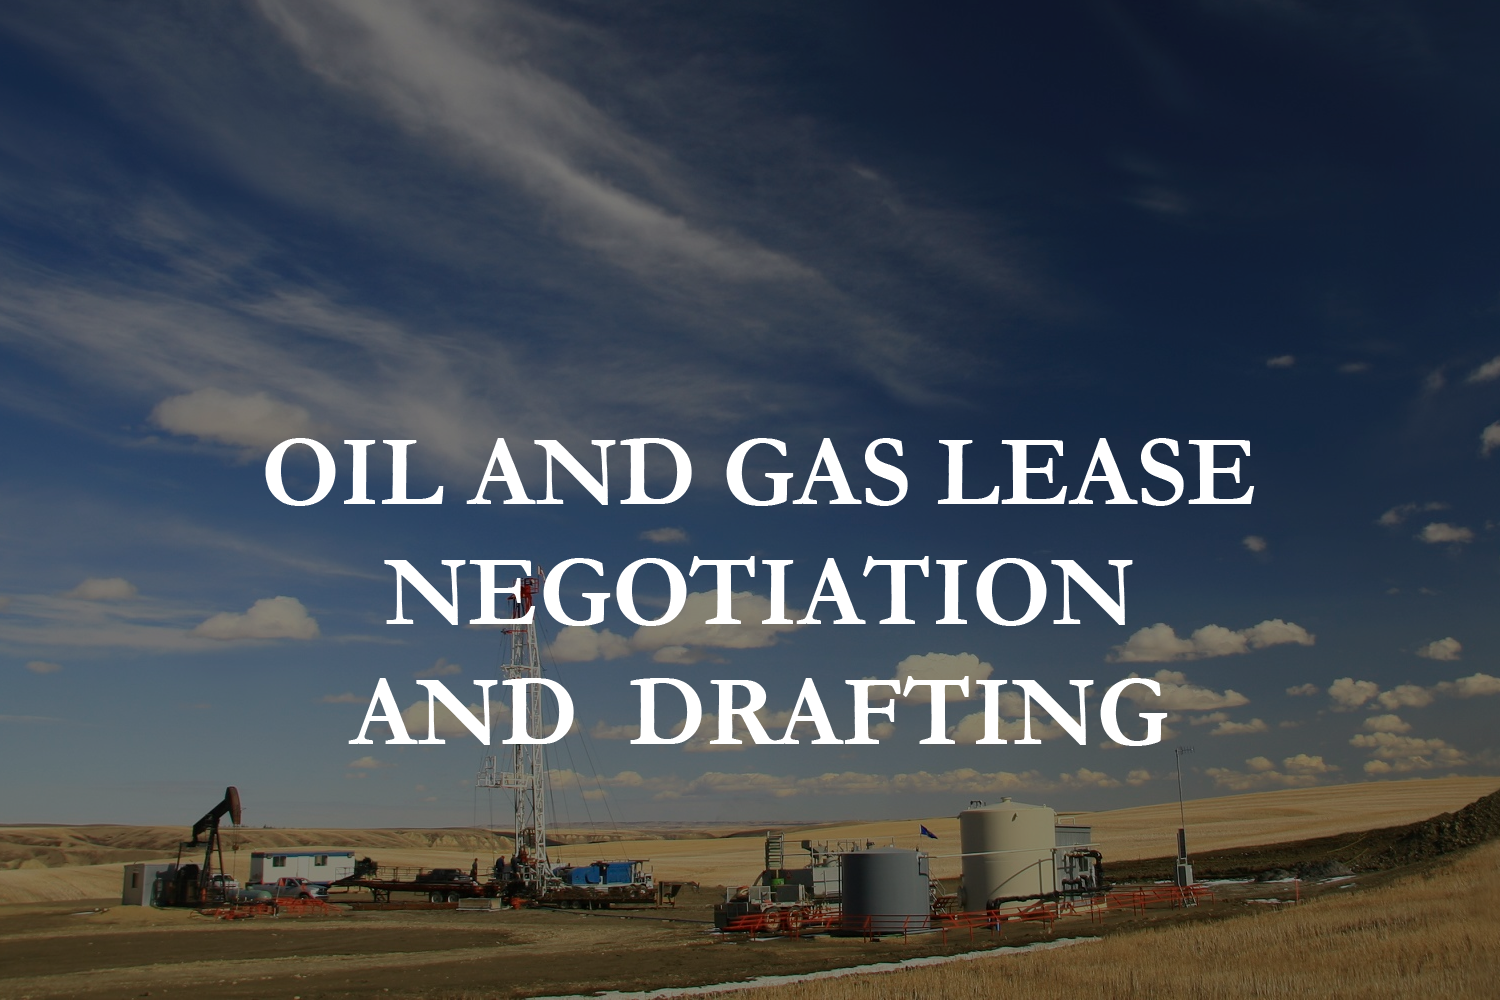 oil and gas lease image